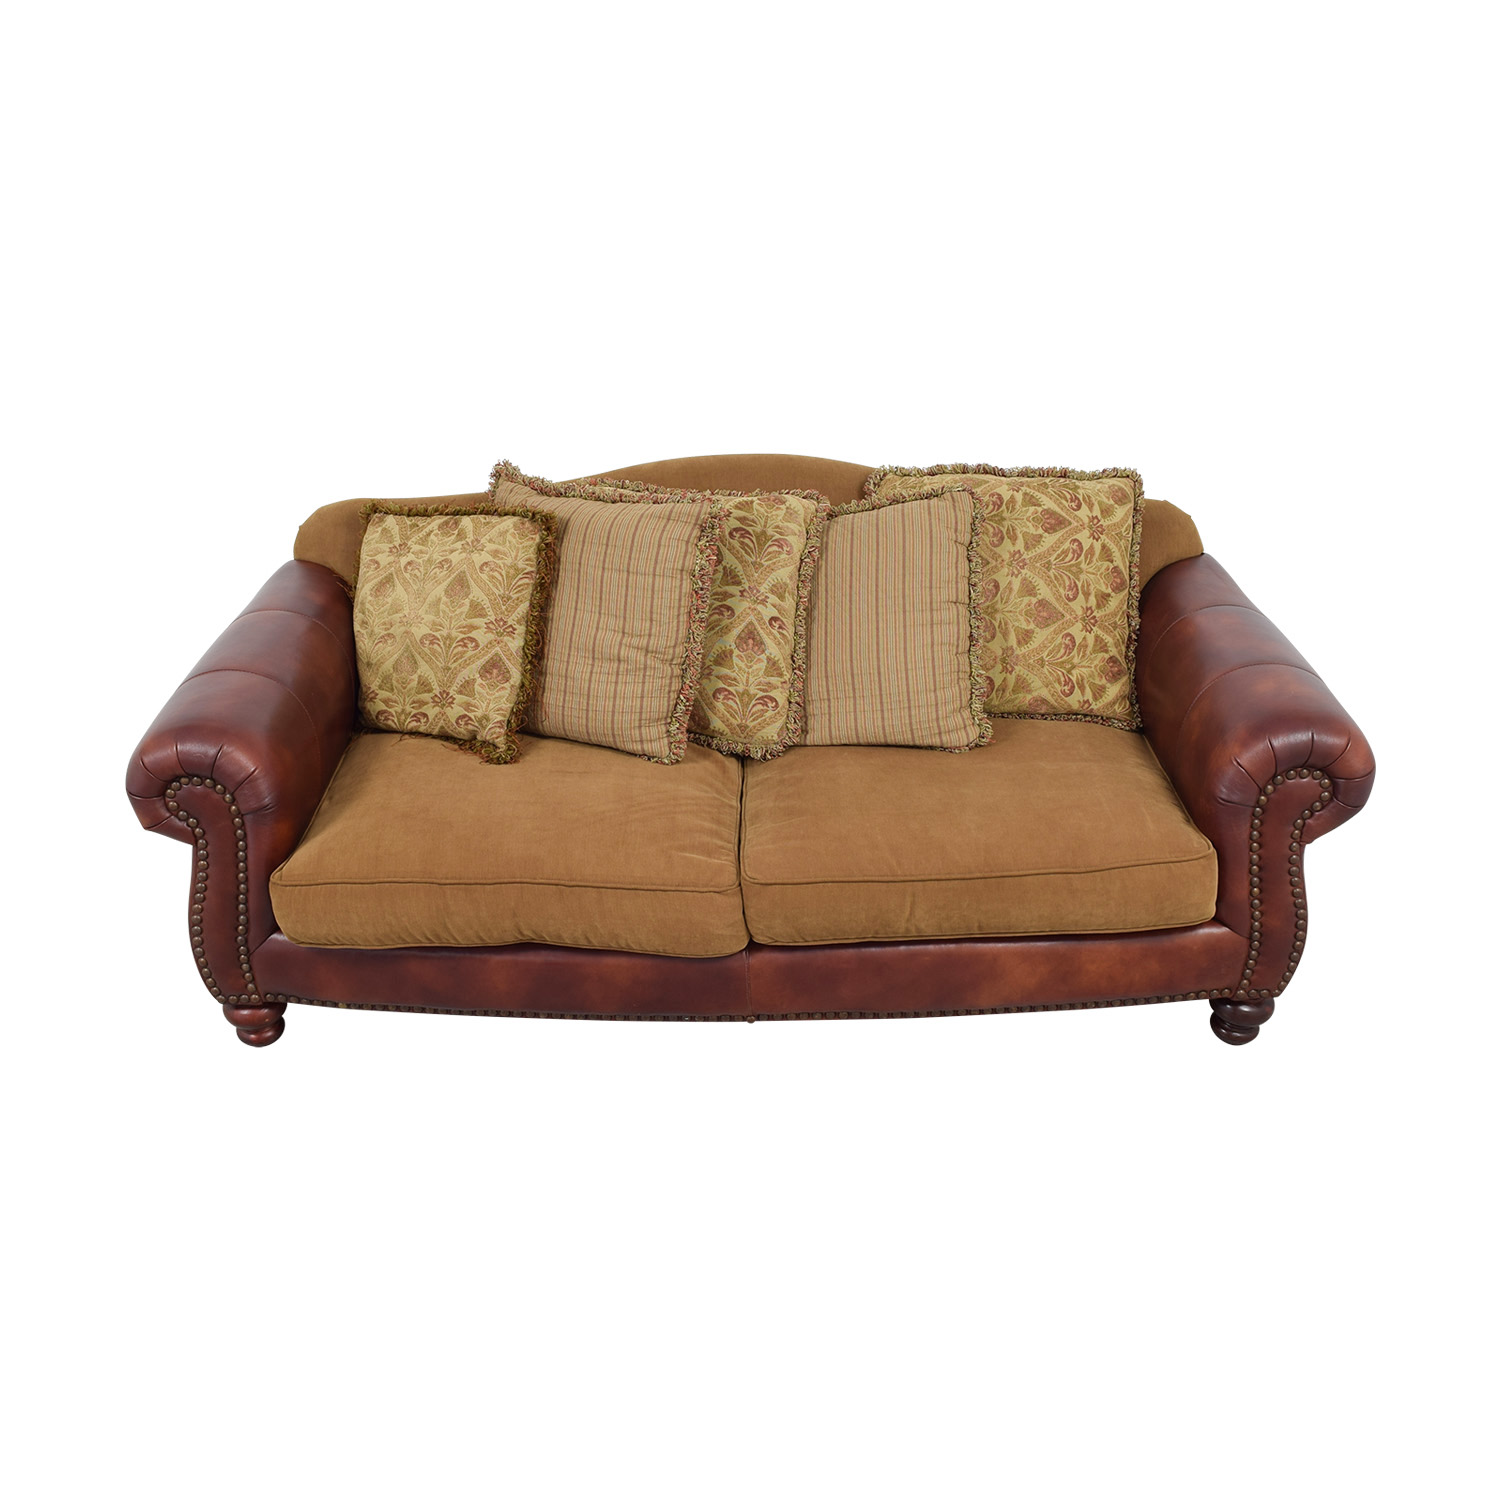 Suffern Fine Furniture Suffern Fine Furniture Distinctions Leather & Microfiber Nailhead Sofa red